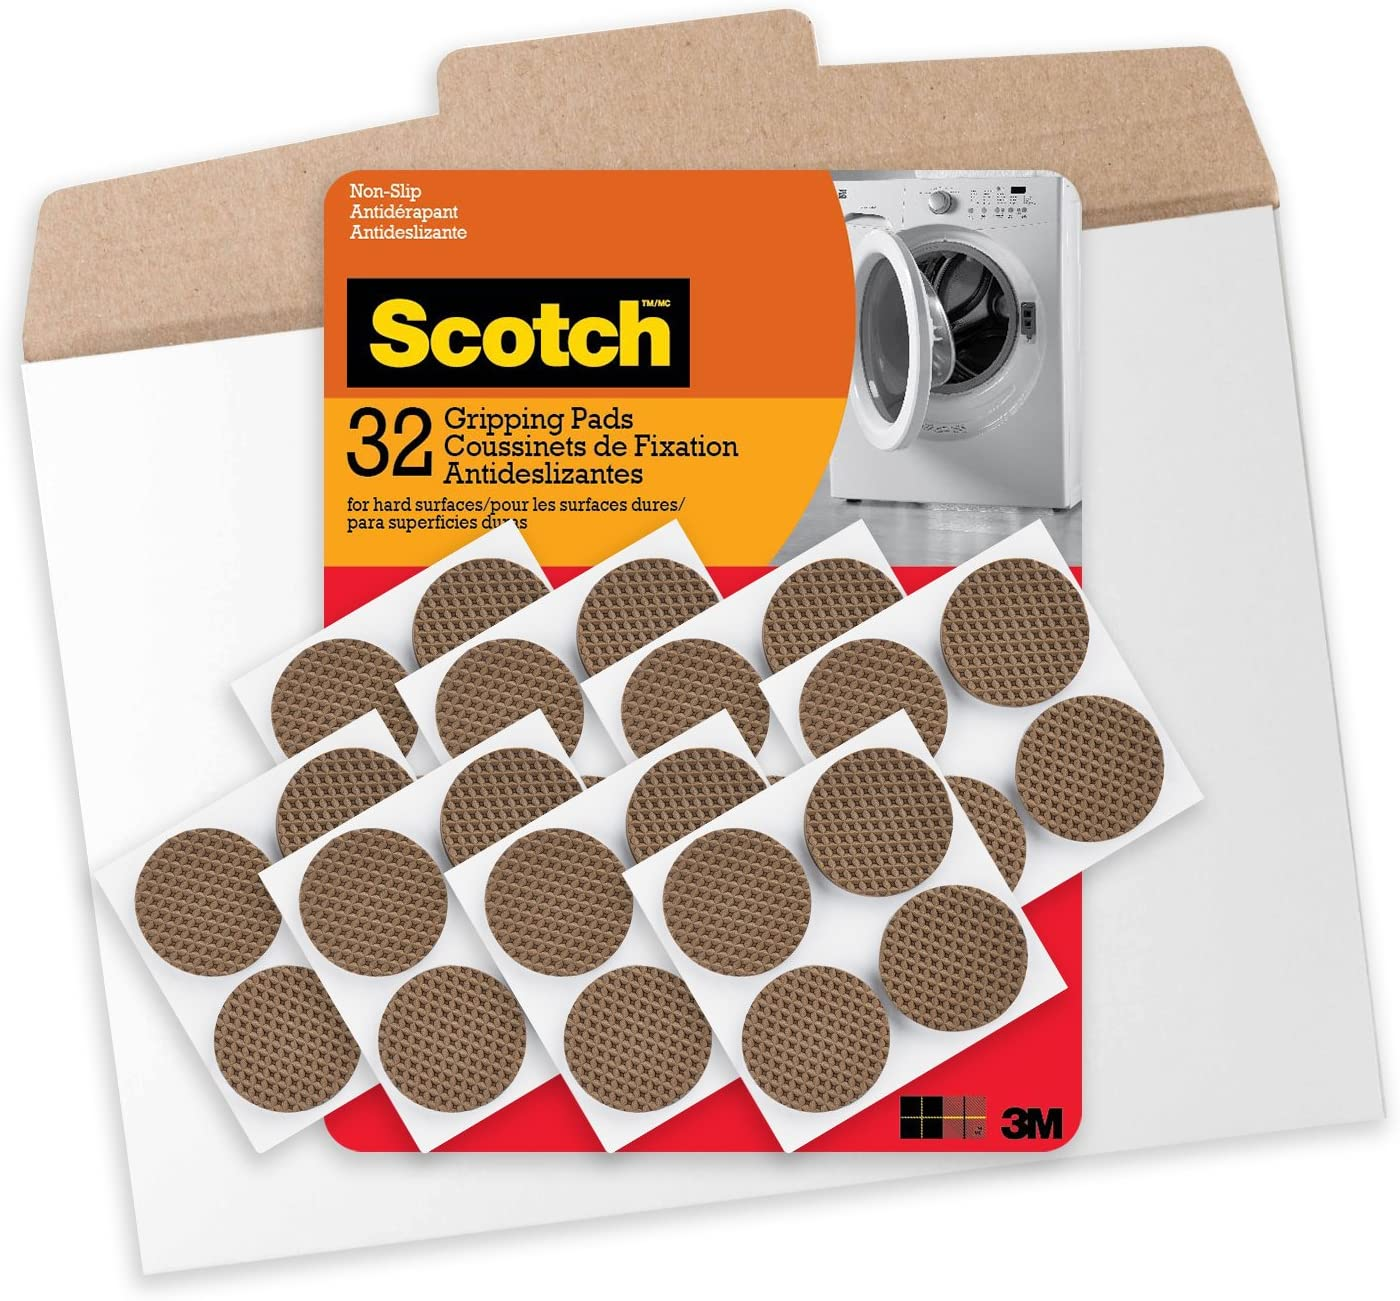 Scotch 1.5 in Gripping Pads in Easy to Open Packaging, 32 Pads, Brown